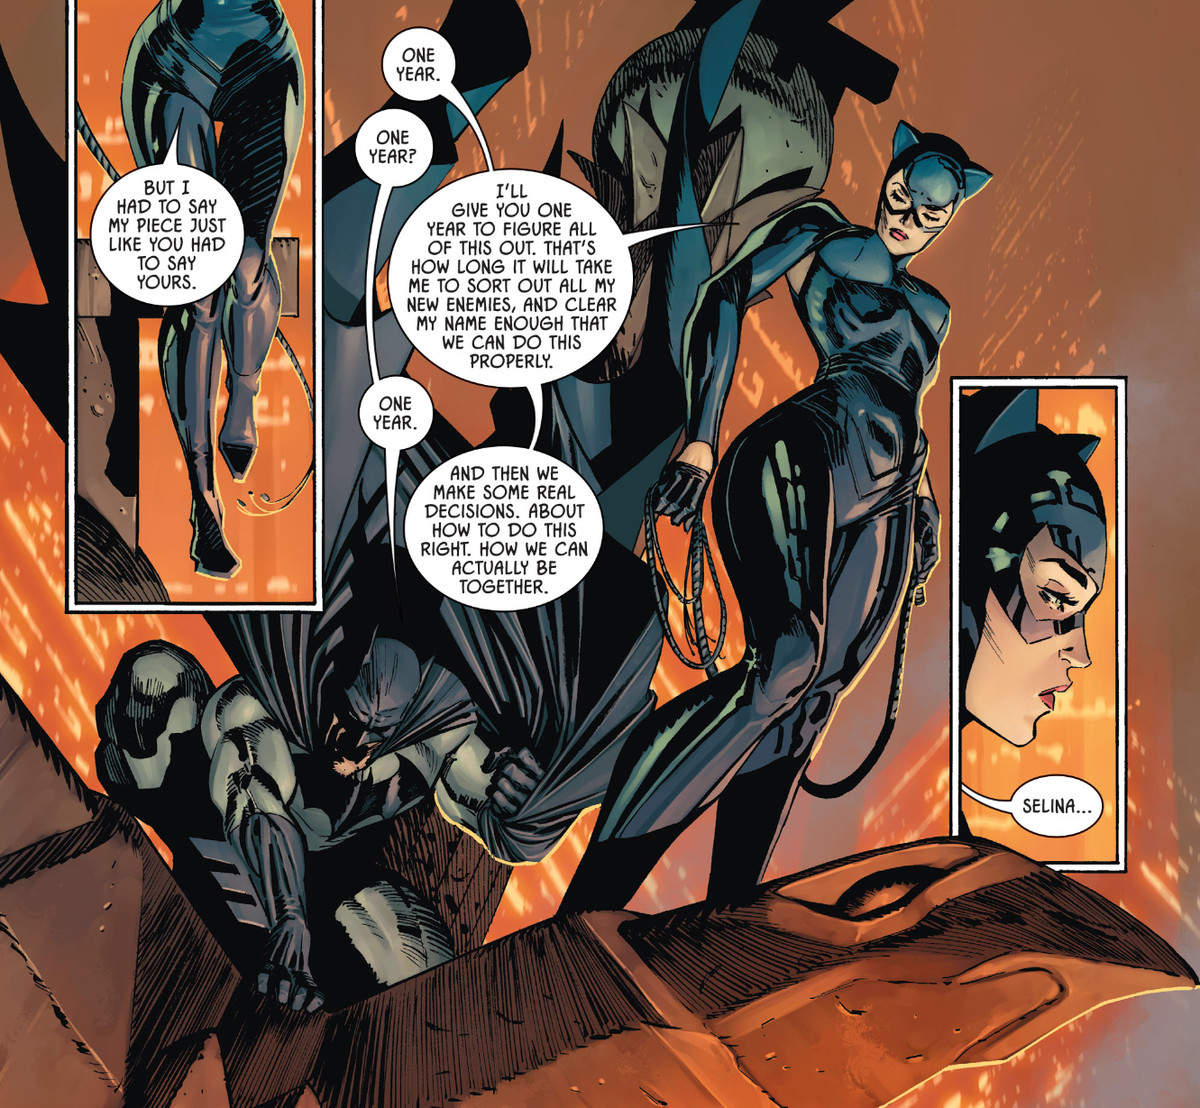 Catwoman explains her plan to separate from Batman for a year so they can work out their own lives, in Batman #101, DC Comics (2020).